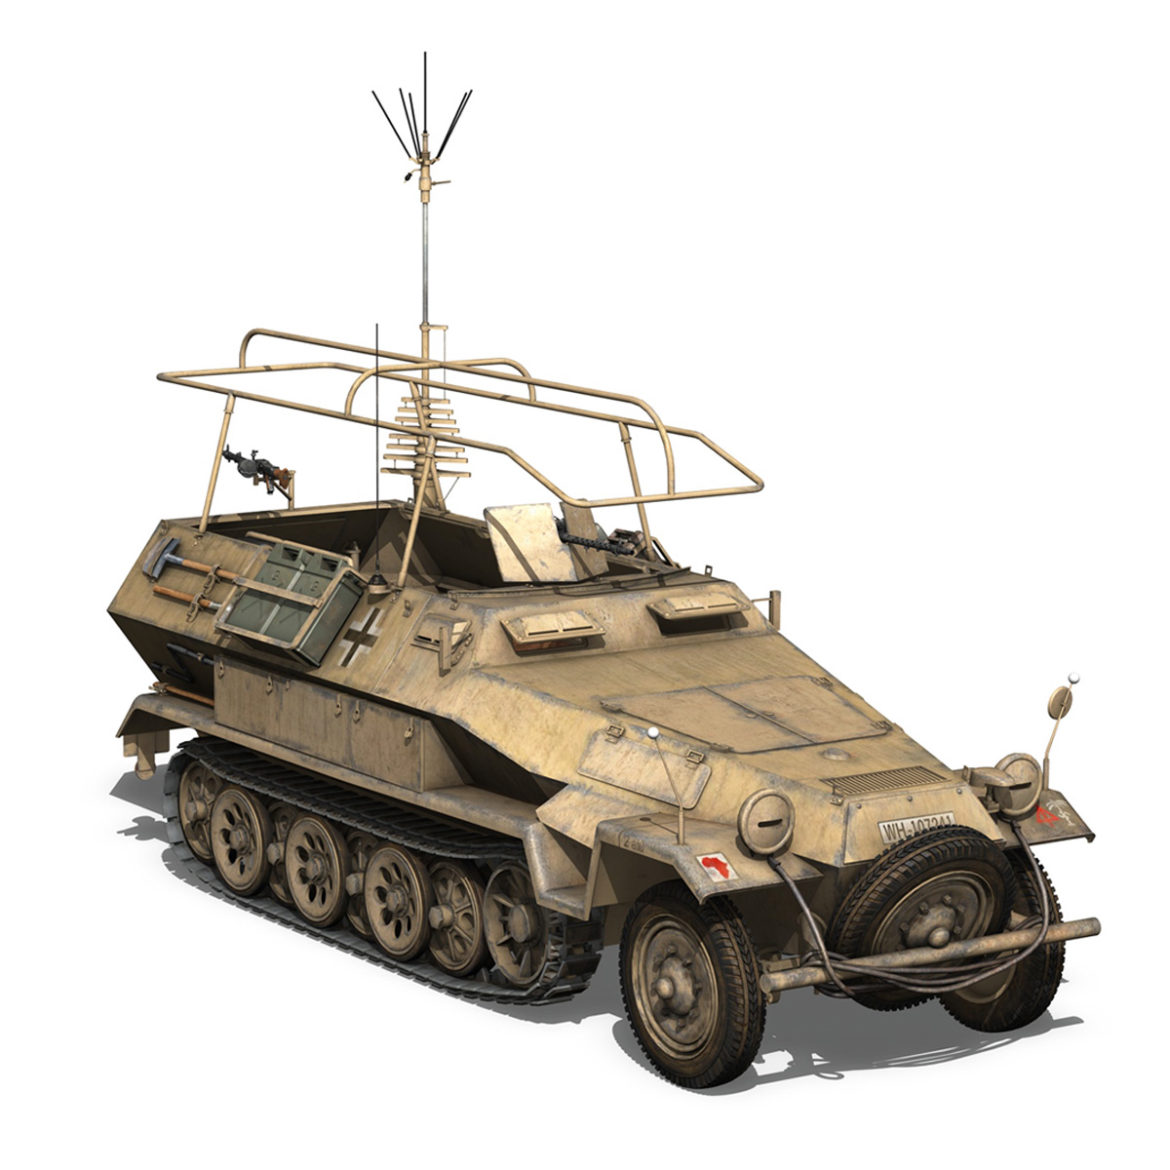 sdkfz 251 ausf.b – communications vehicle – 15pd 3d model 3ds fbx lwo lw lws obj c4d 305994